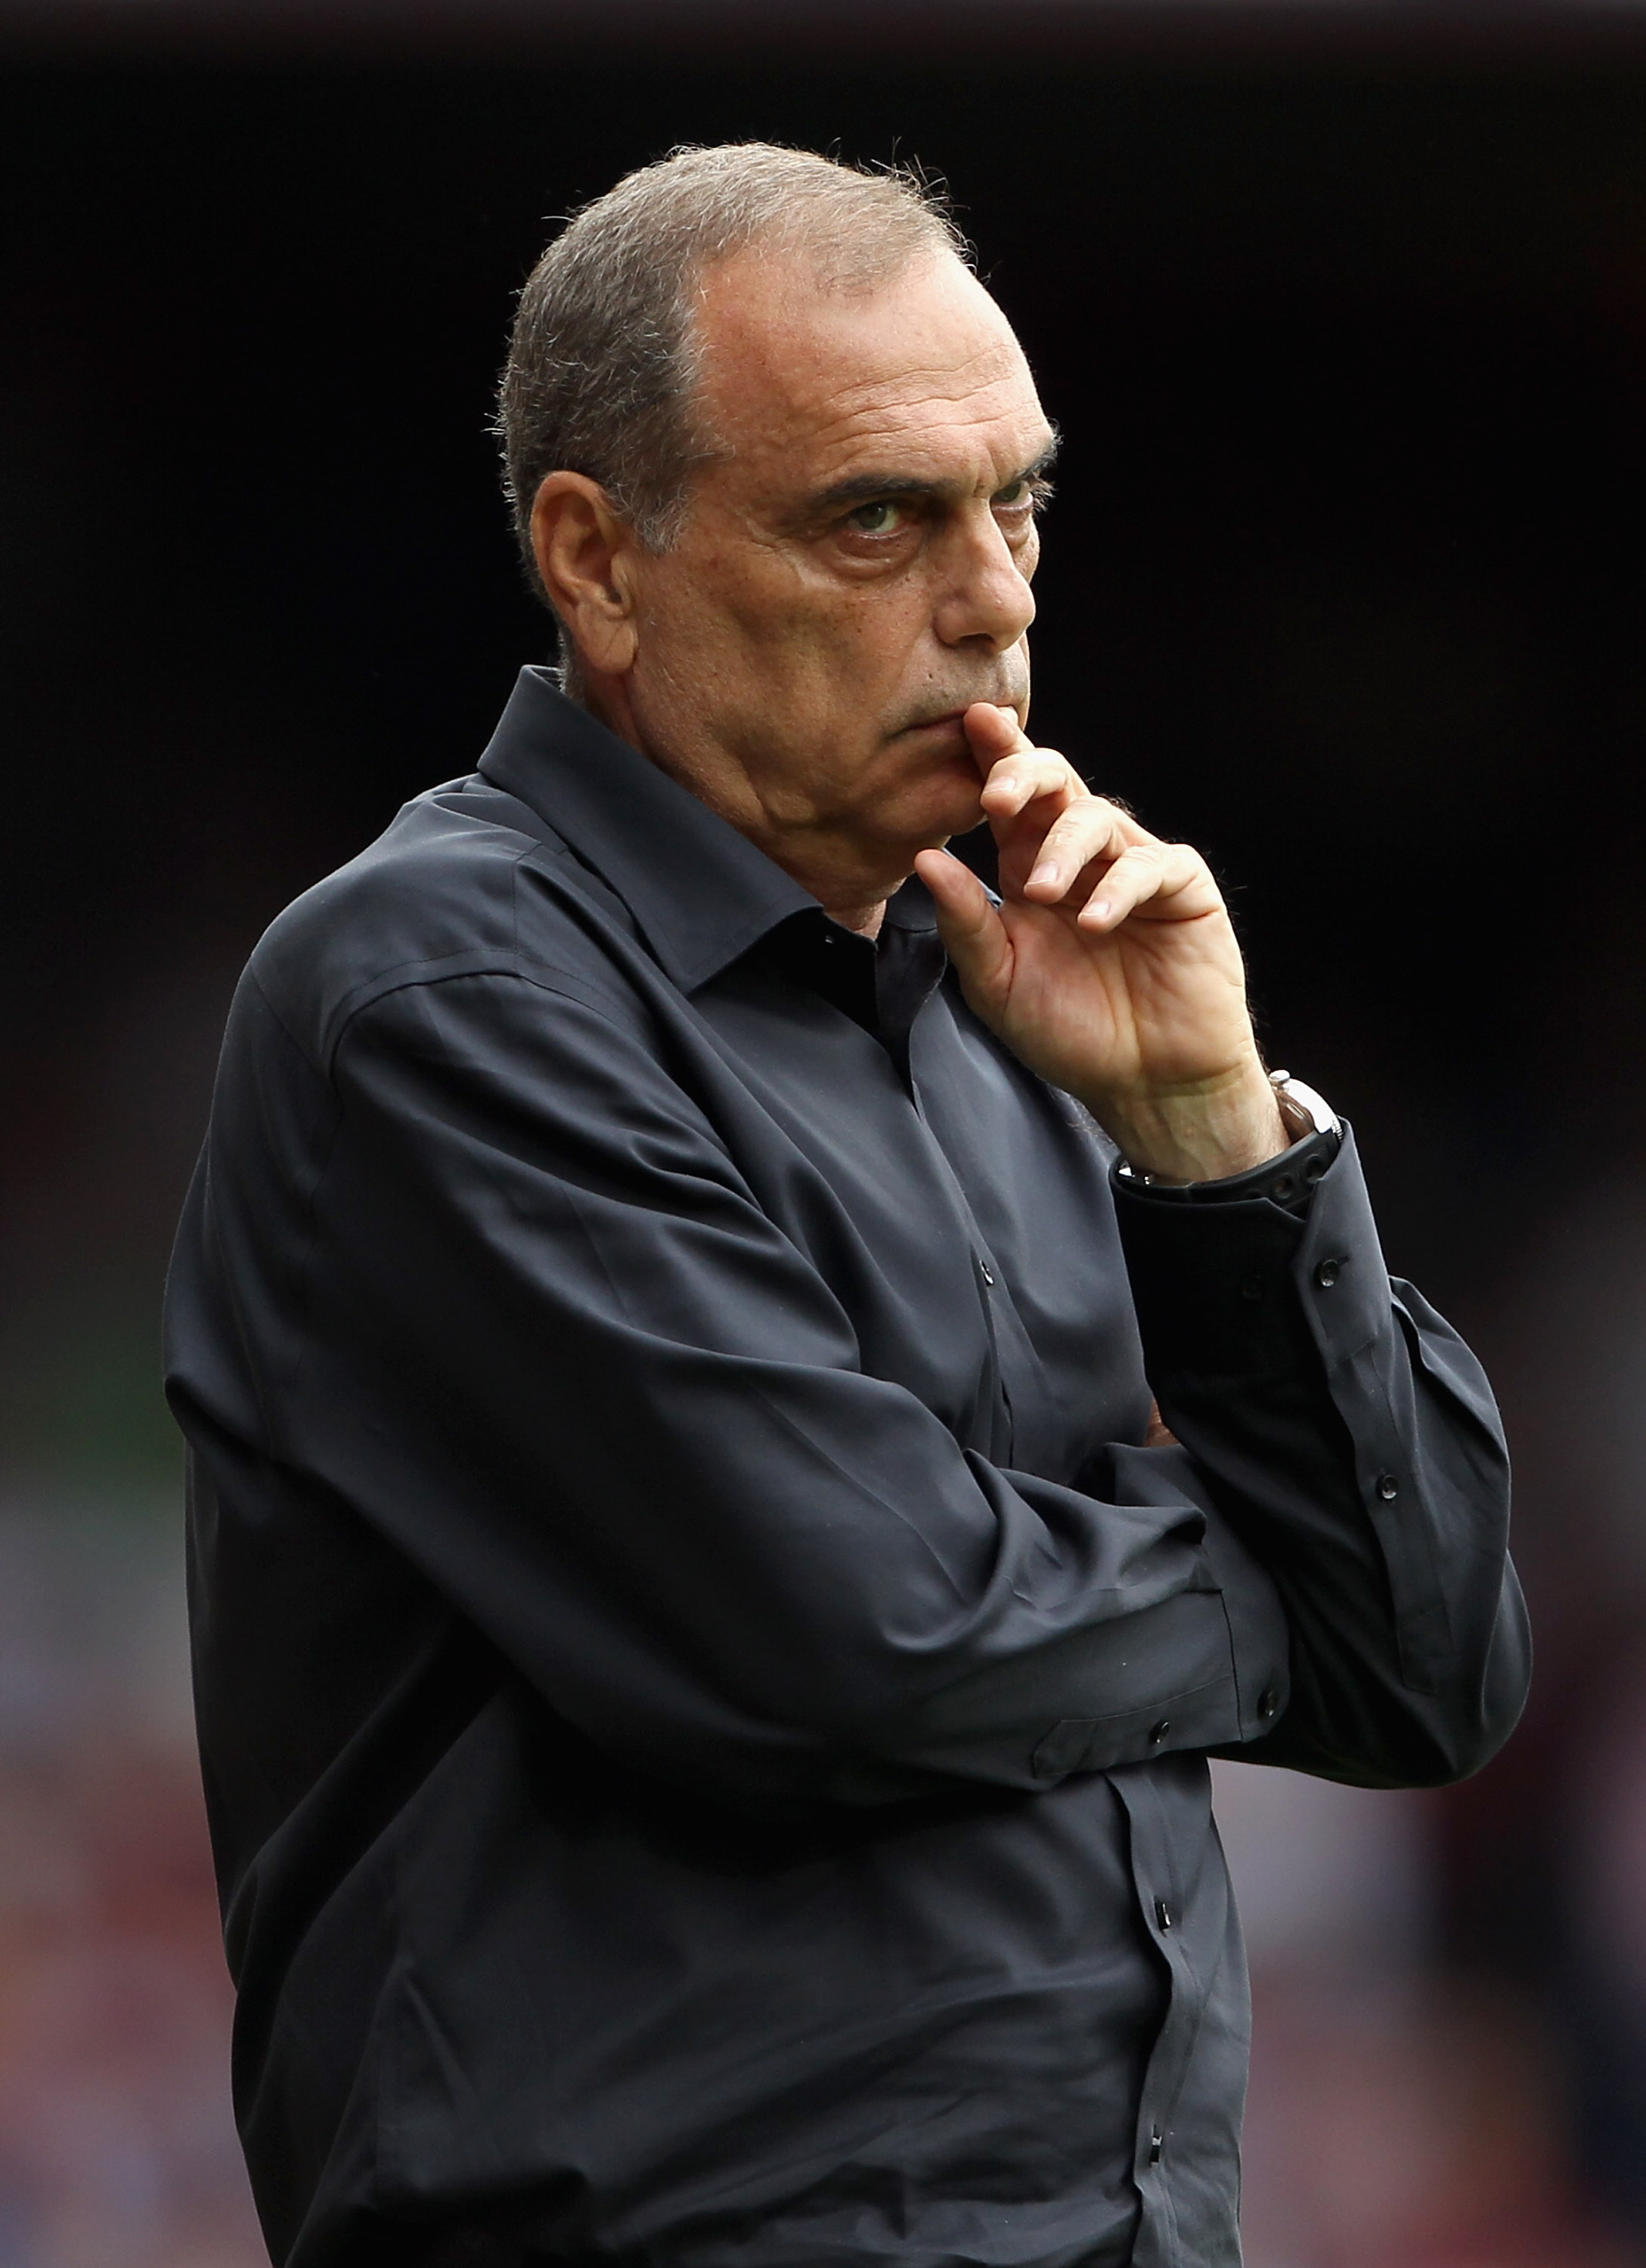 Hammers' Boss Avram Grant Ponders Where He Went Wrong